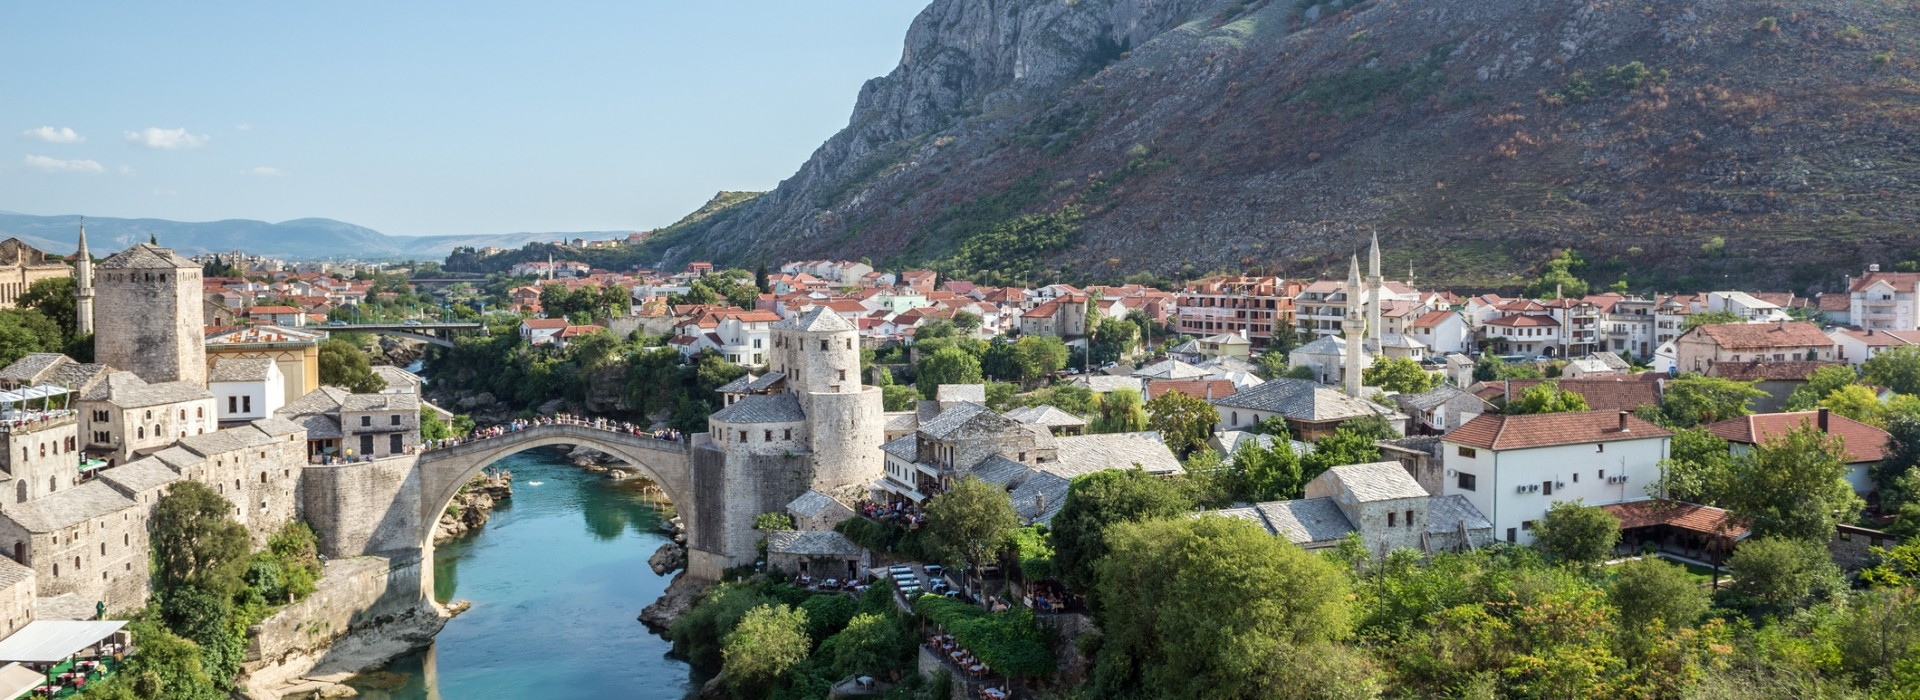 Travelling Bosnia Herzegovina - Tours and Trips in Bosnia Herzegovina